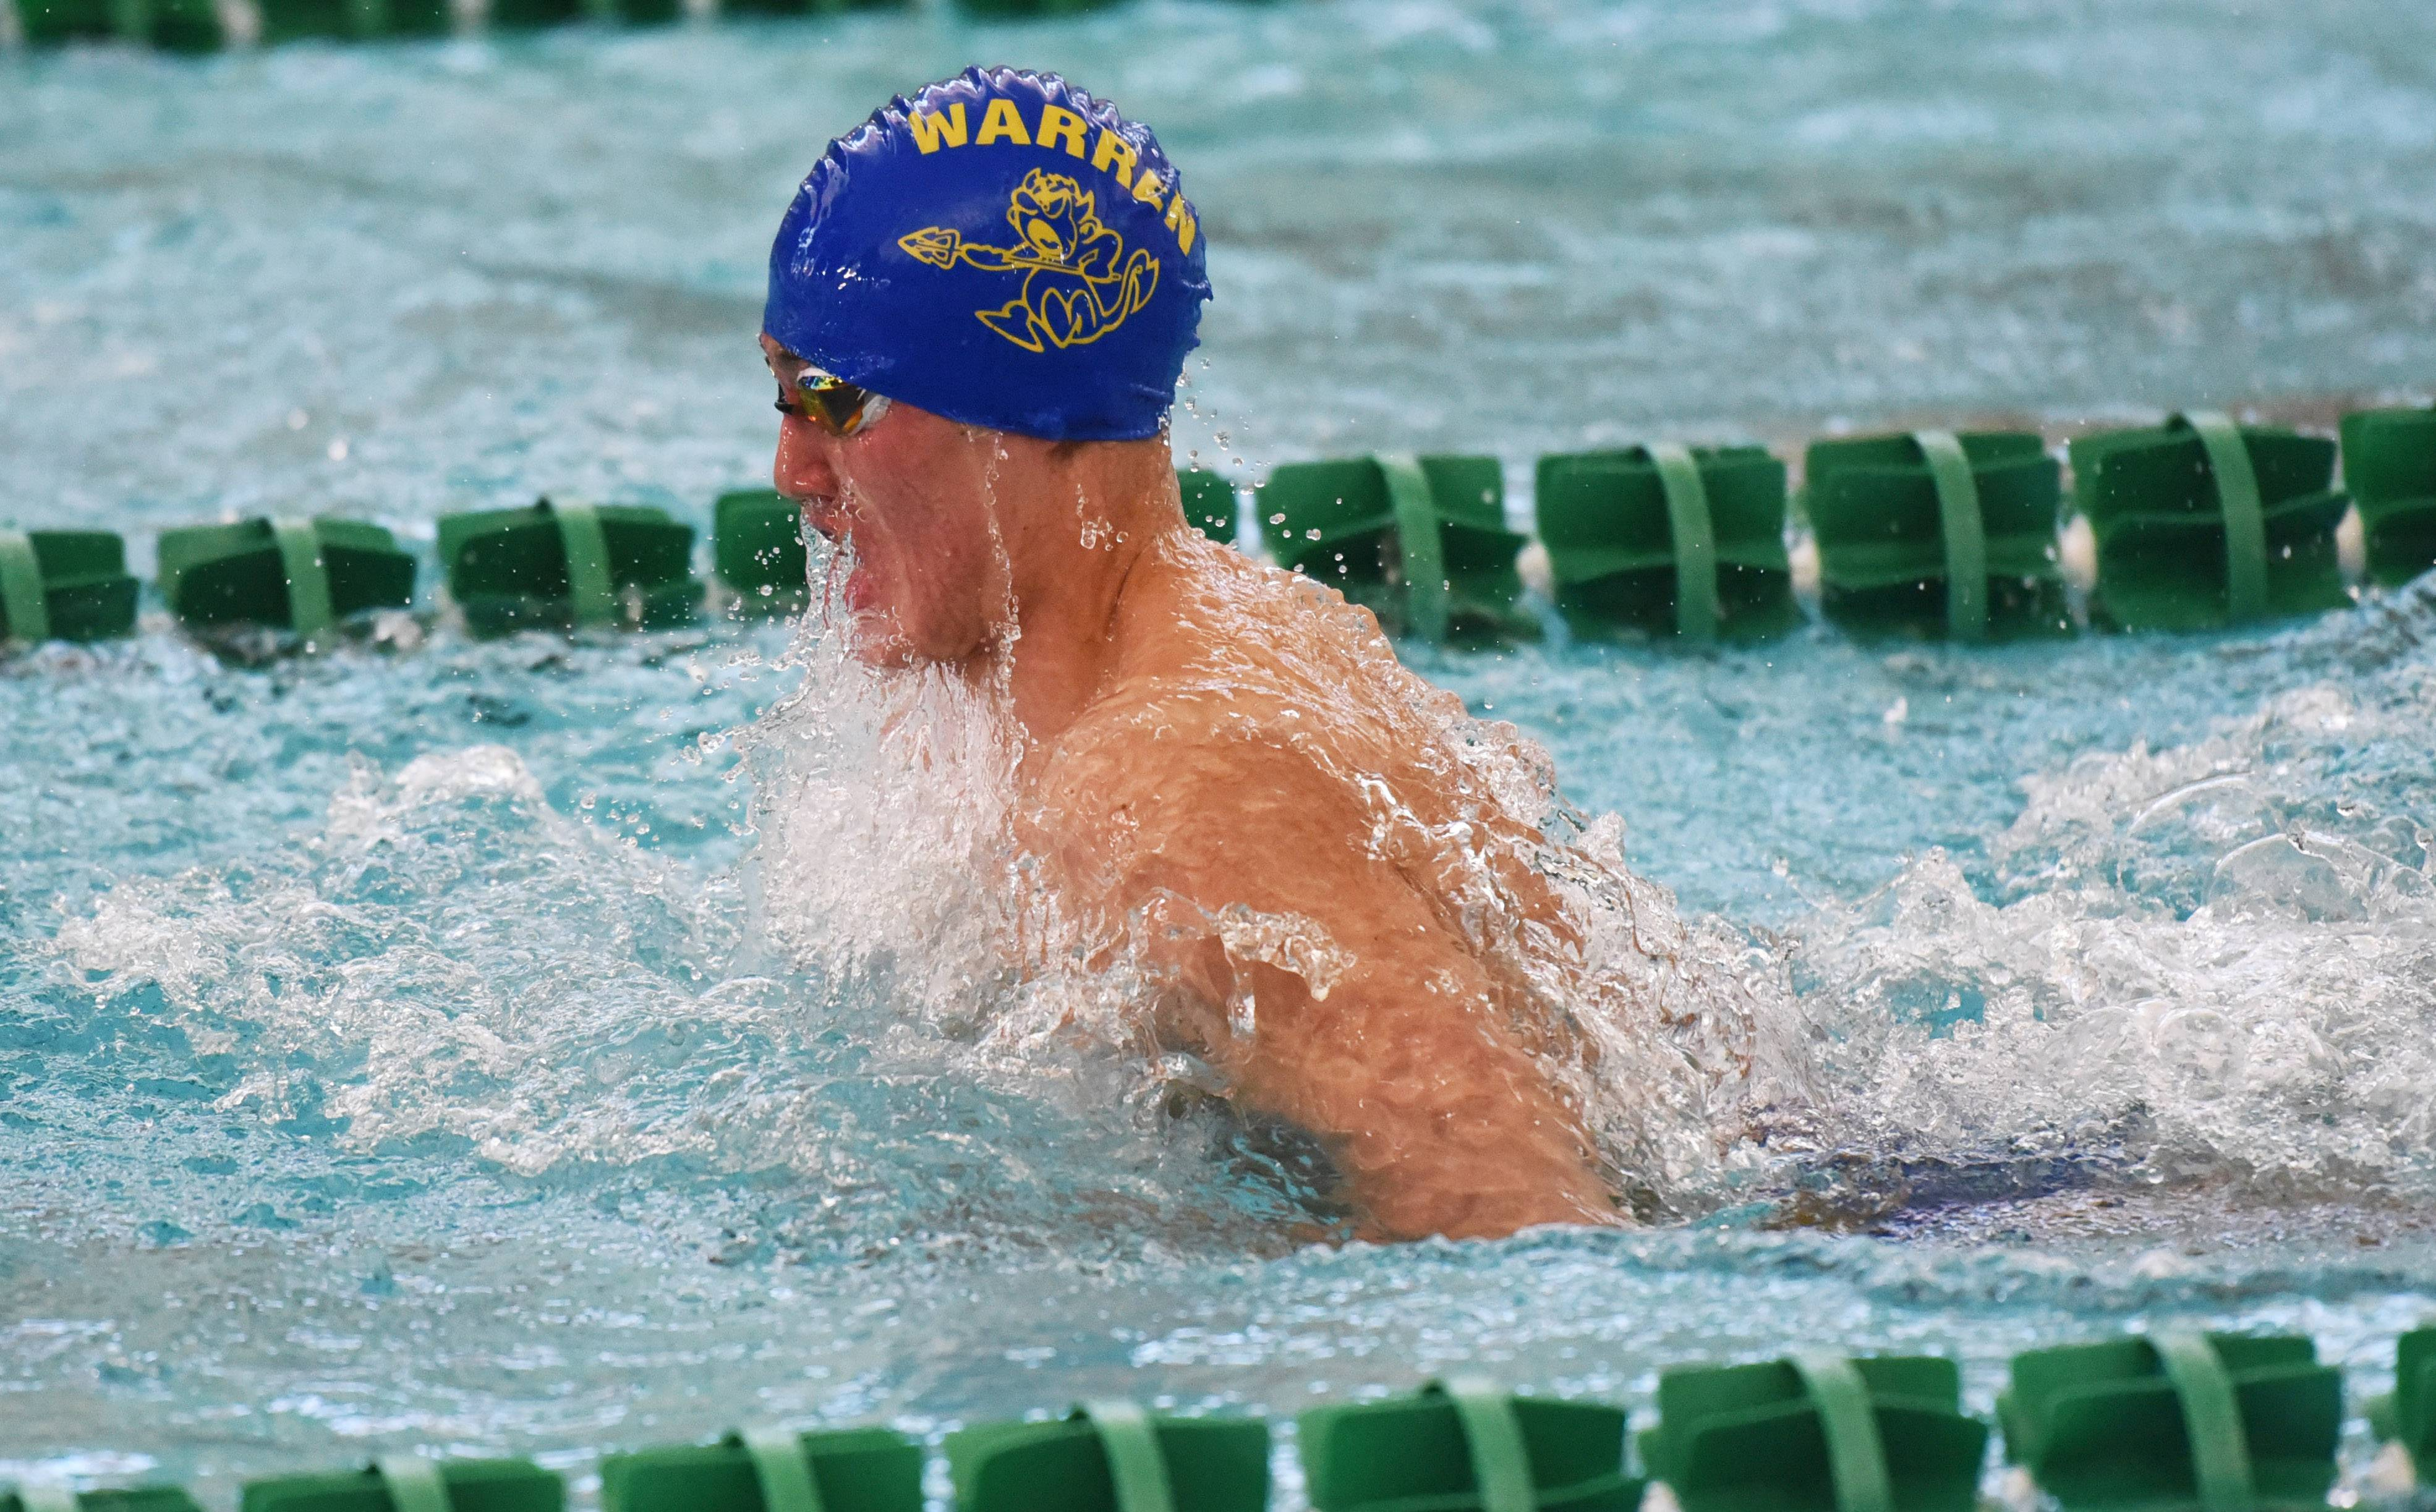 Warren's Taylor Vander-Jeugdt swims the breaststroke leg of his teams's 200-yard medley relay event during the NSC swim meet Saturday at Stevenson High School in Lincolnshire.